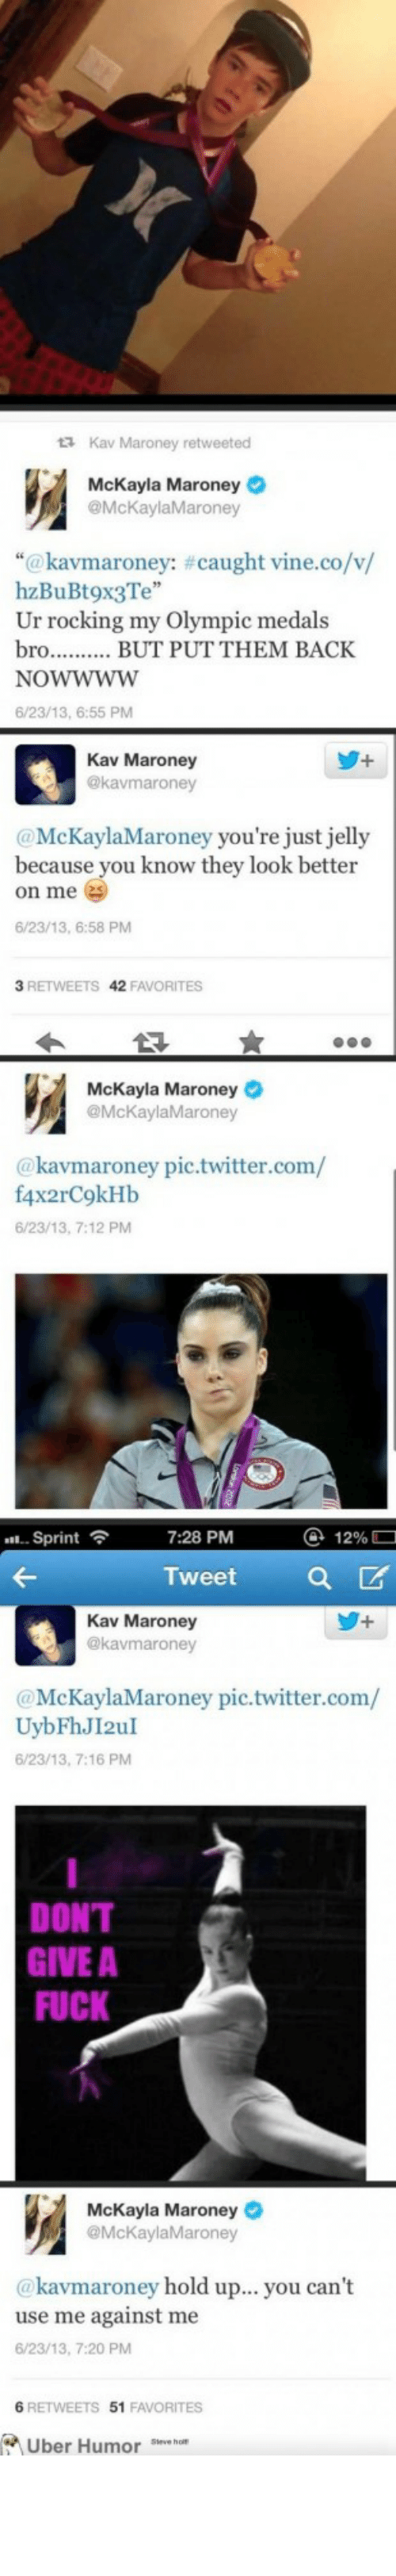 "Maroney: 13 Kav Maroney retweeted  McKayla Maroney O  @McKaylaMaroney  ""@kavmaroney: #caught vine.co/v/  hzB  Ur rocking my Olympic medals  bro.. . BUT PUT THEM BACK  <3Te""  NOWWWW  6/23/13, 6:55 PM  Kav Maroney  @kavmaroney  @McKaylaMaroney you're just jelly  because you know they look better  on me  6/23/13, 6:58 PM  3 RETWEETS 42 FAVORITES  McKayla Maroney O  @McKaylaMaroney  @kavmaroney pic.twitter.com/  f4x2rC9kHb  6/23/13, 7:12 PM  @ 12%O  . Sprint  7:28 PM  Tweet  Kav Maroney  @kavmaroney  @McKaylaMaroney pic.twitter.com/  UybFhJI2uI  6/23/13, 7:16 PM  DON'T  GIVE A  FUCK  McKayla Maroney O  @McKaylaMaroney  @kavmaroney hold up... you can't  use me against me  6/23/13, 7:20 PM  6 RETWEETS 51 FAVORITES  A Uber Humor eve hat The Maroney family, everyonehttp://meme-rage.tumblr.com"